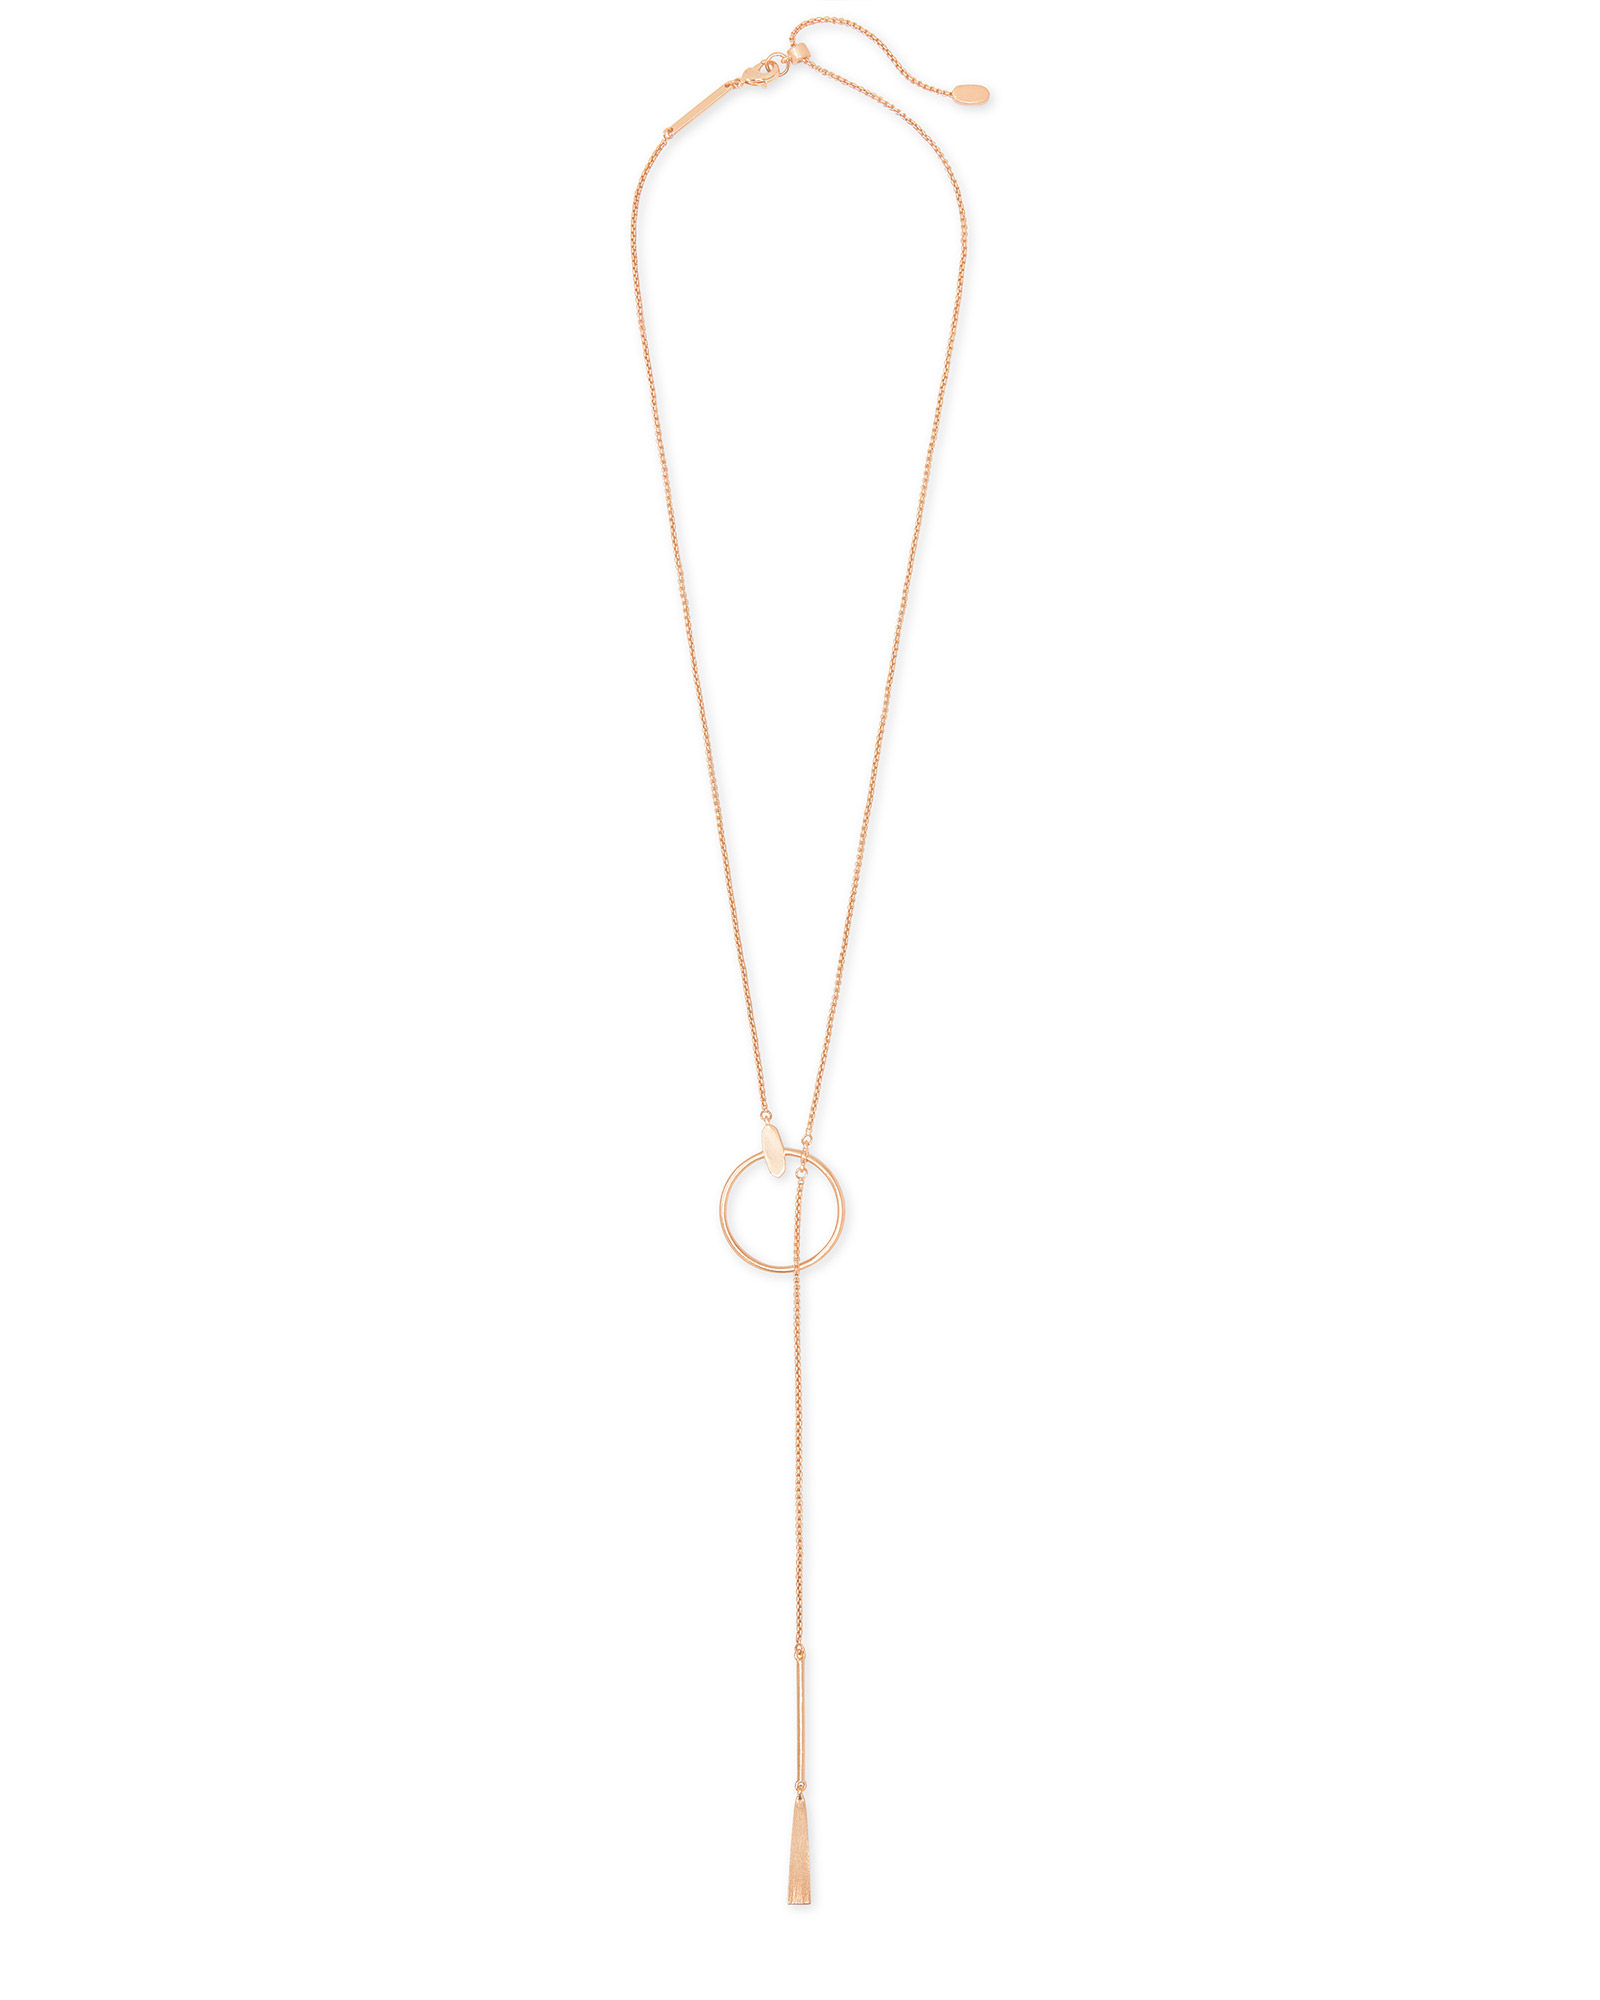 Small Tegan Y Necklace in Rose Gold